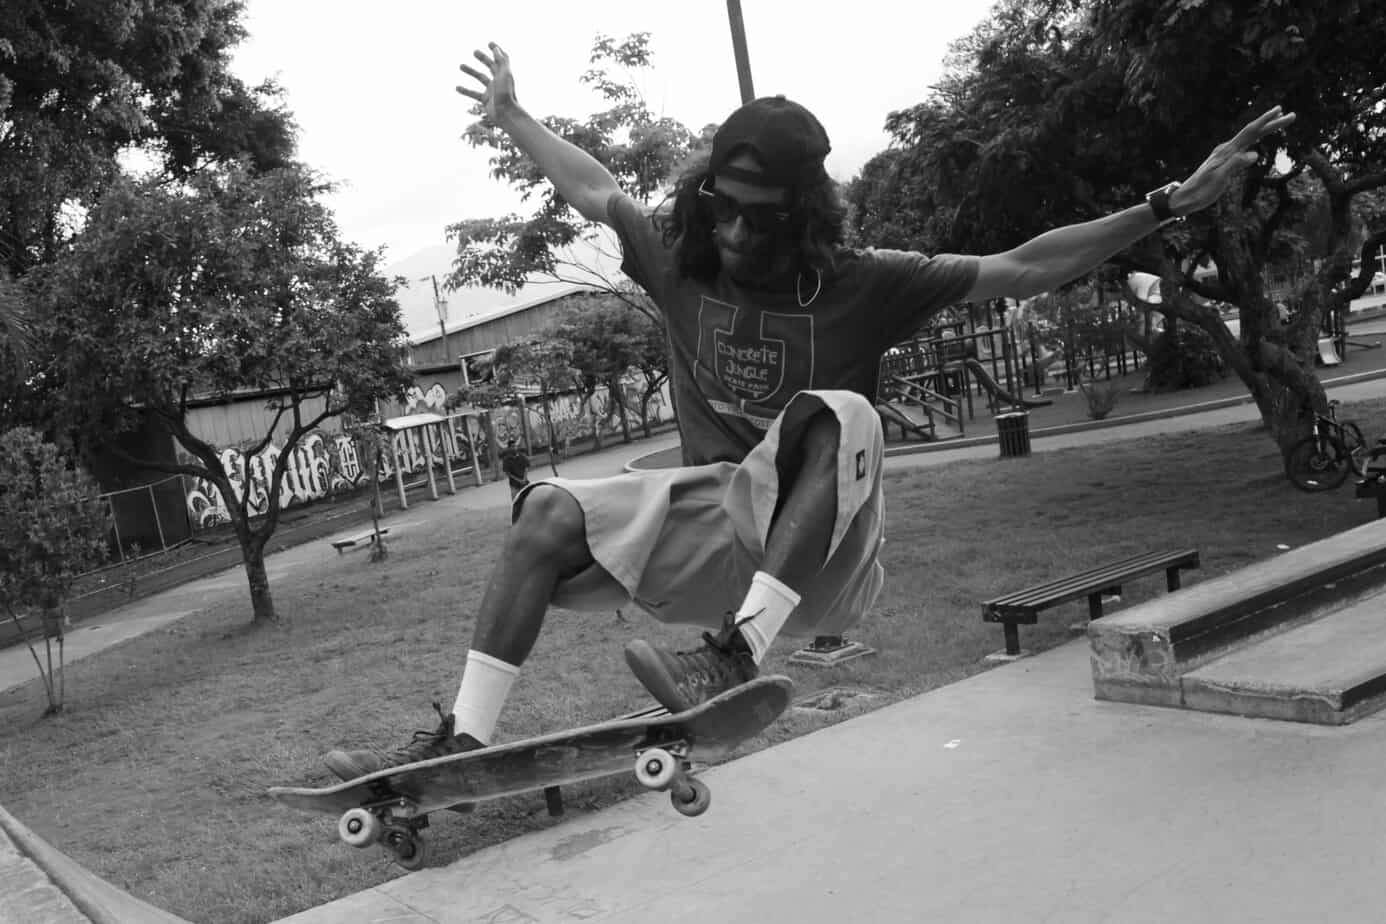 World Skateboarding Day 2019